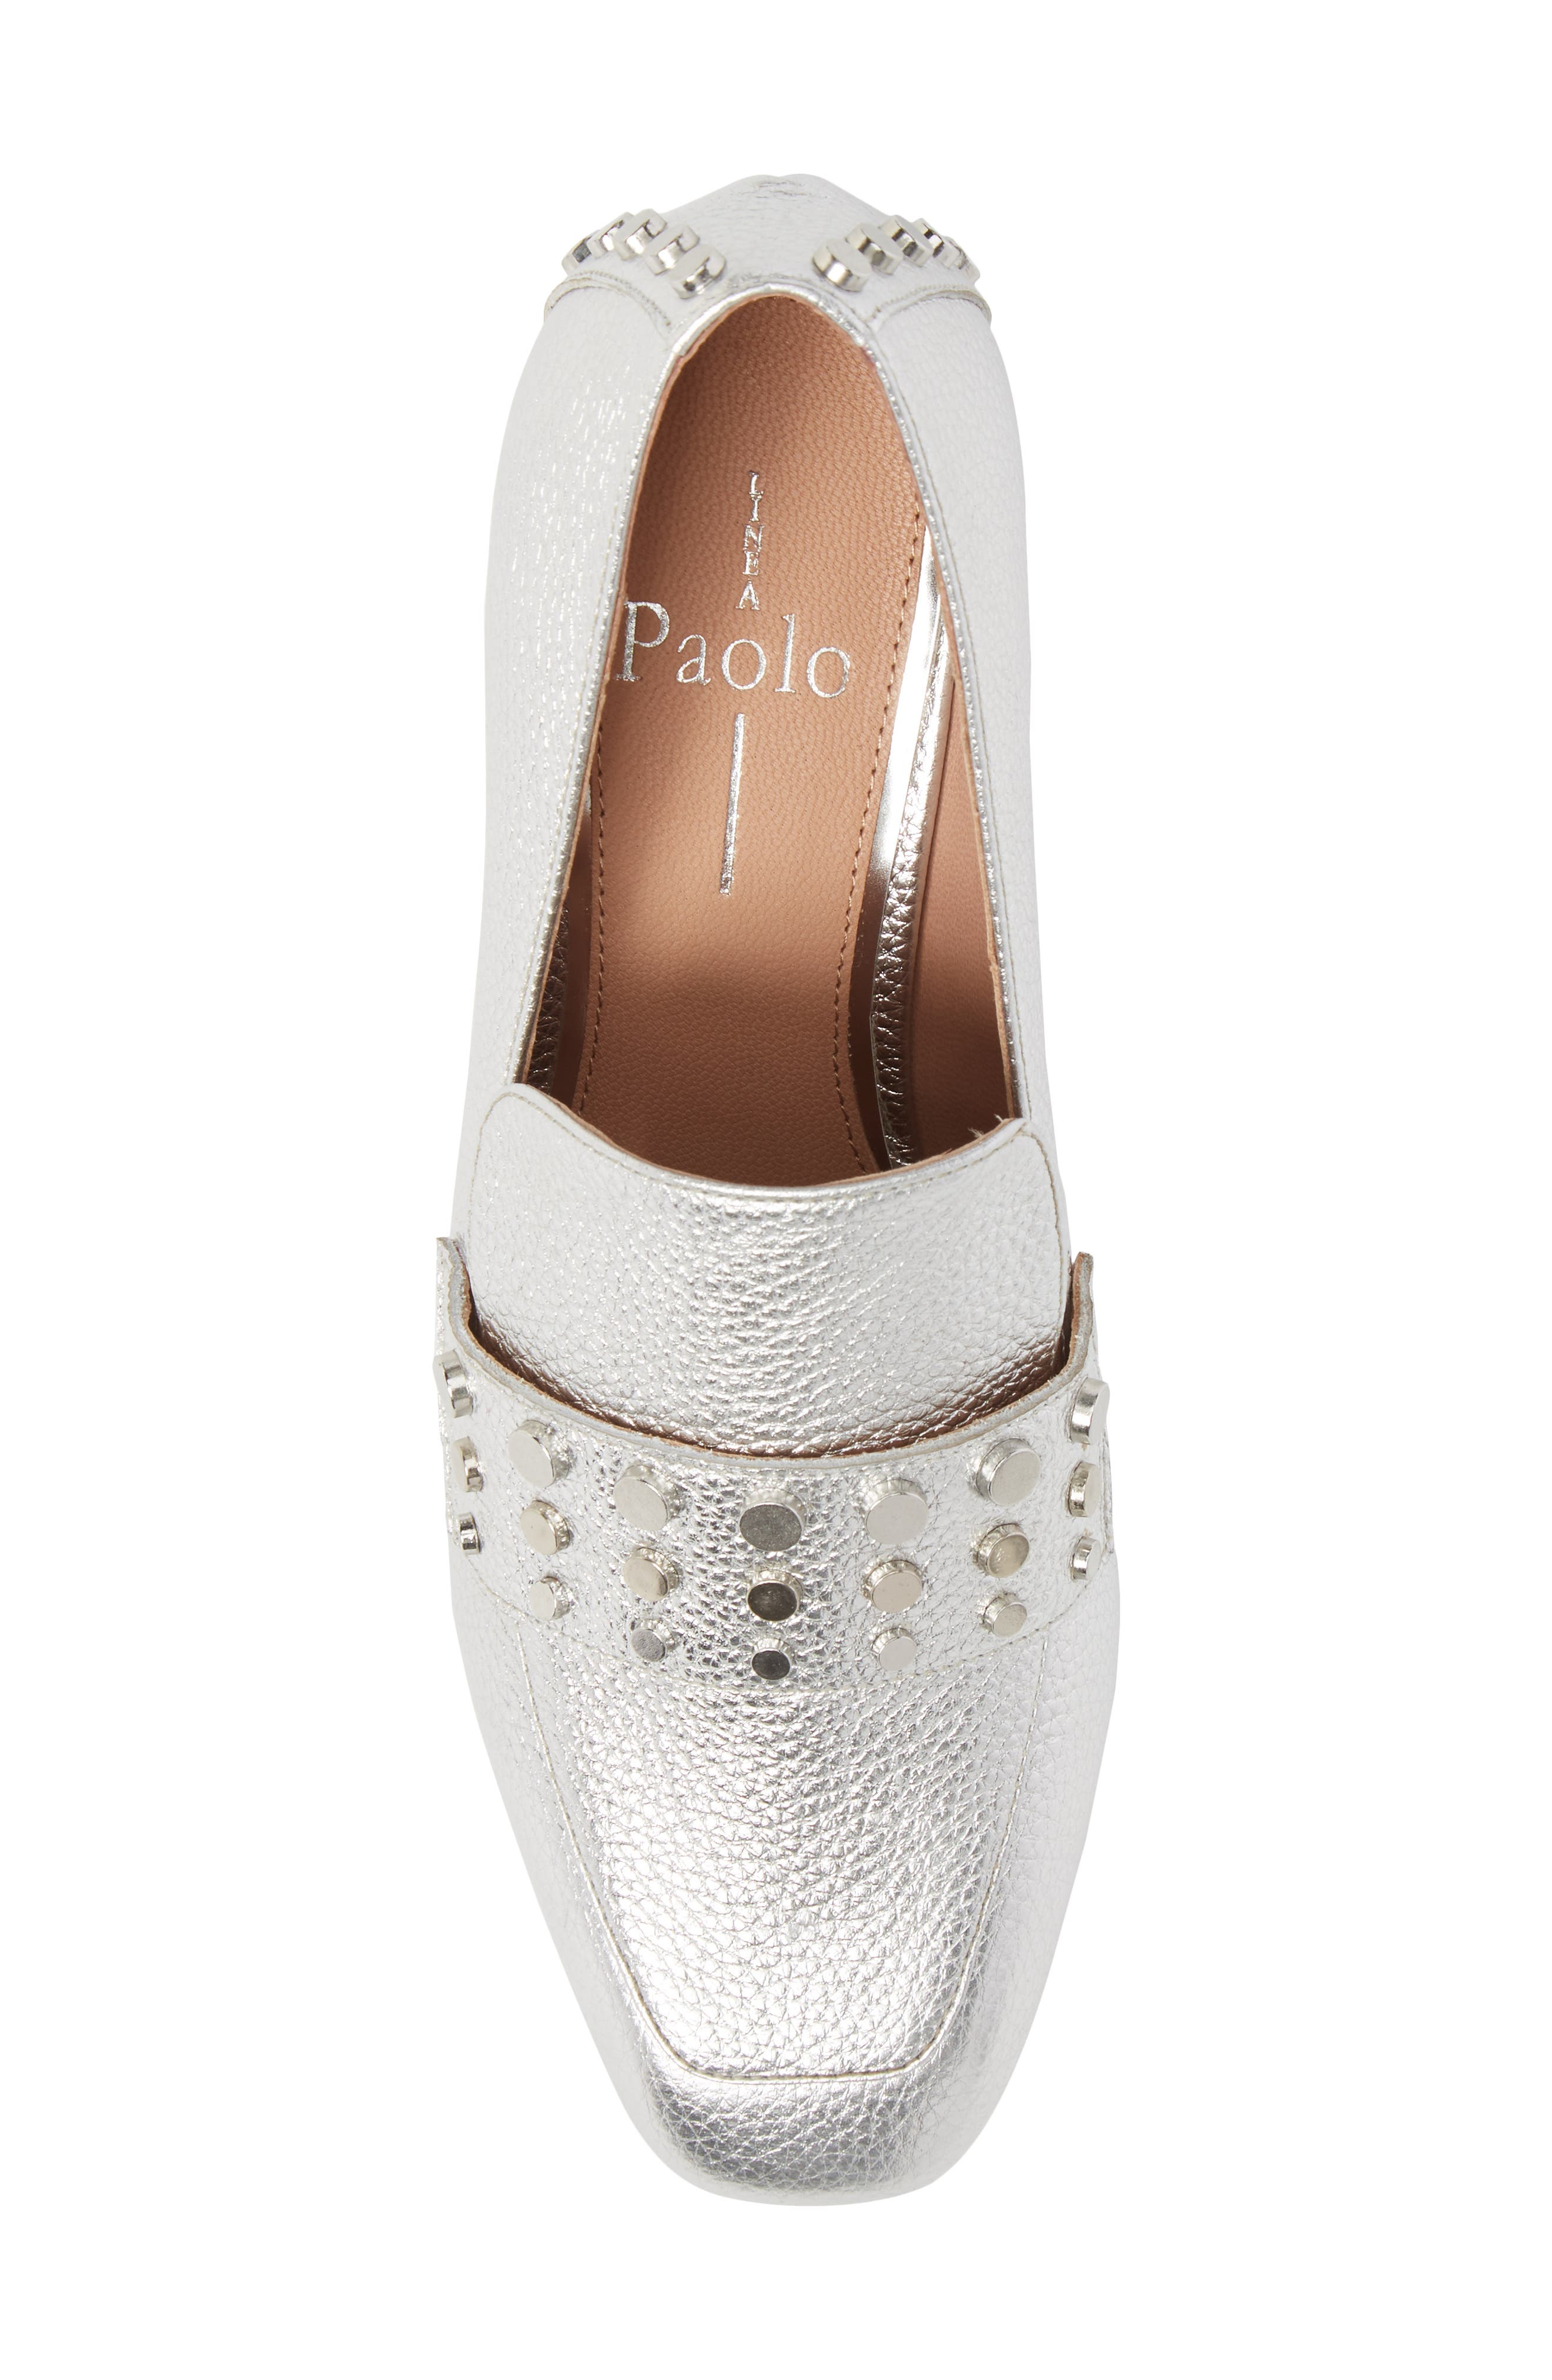 Luca Studded Pump,                             Alternate thumbnail 5, color,                             Silver Leather